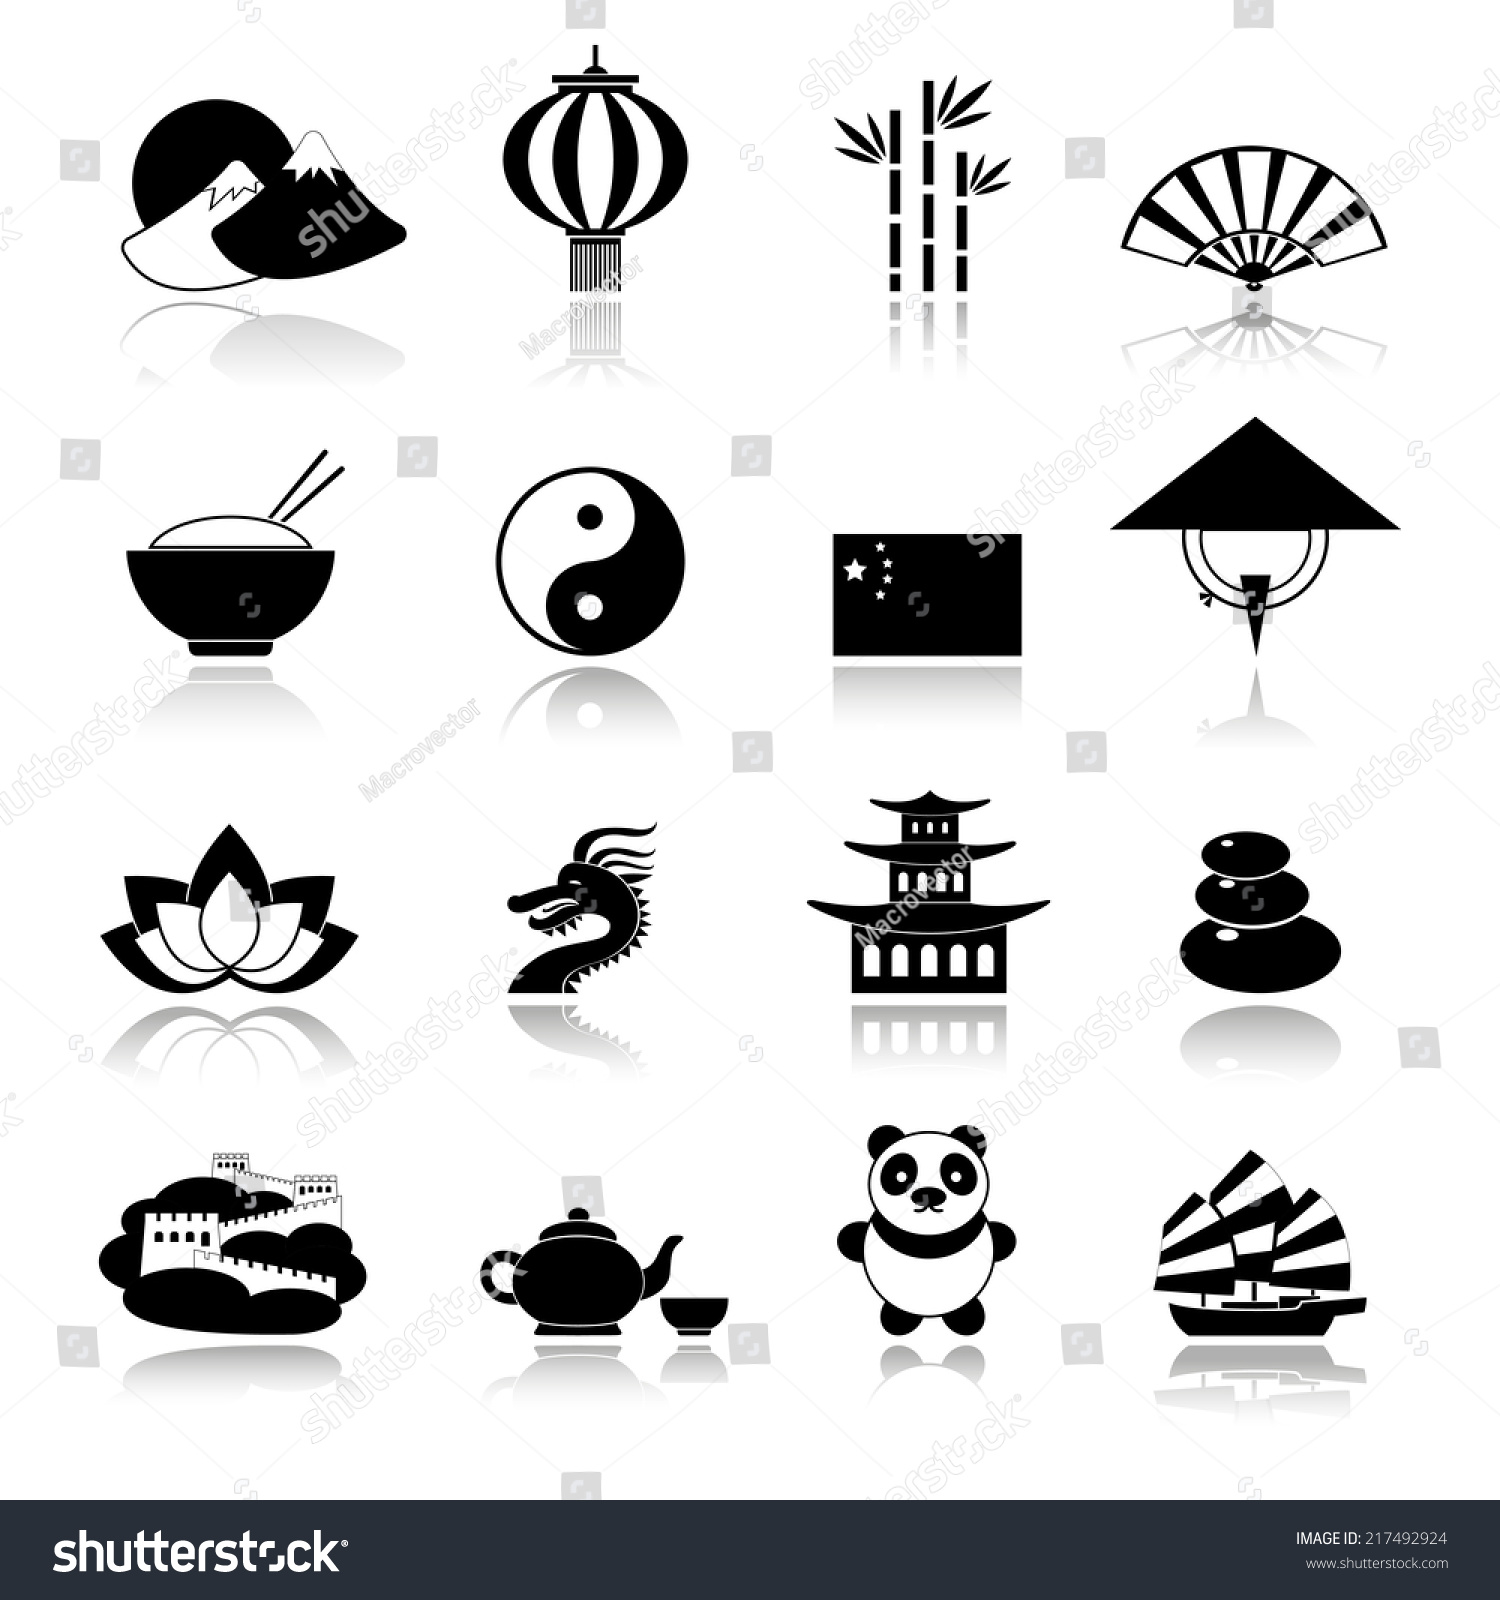 Chinese Culture Symbols And Meanings